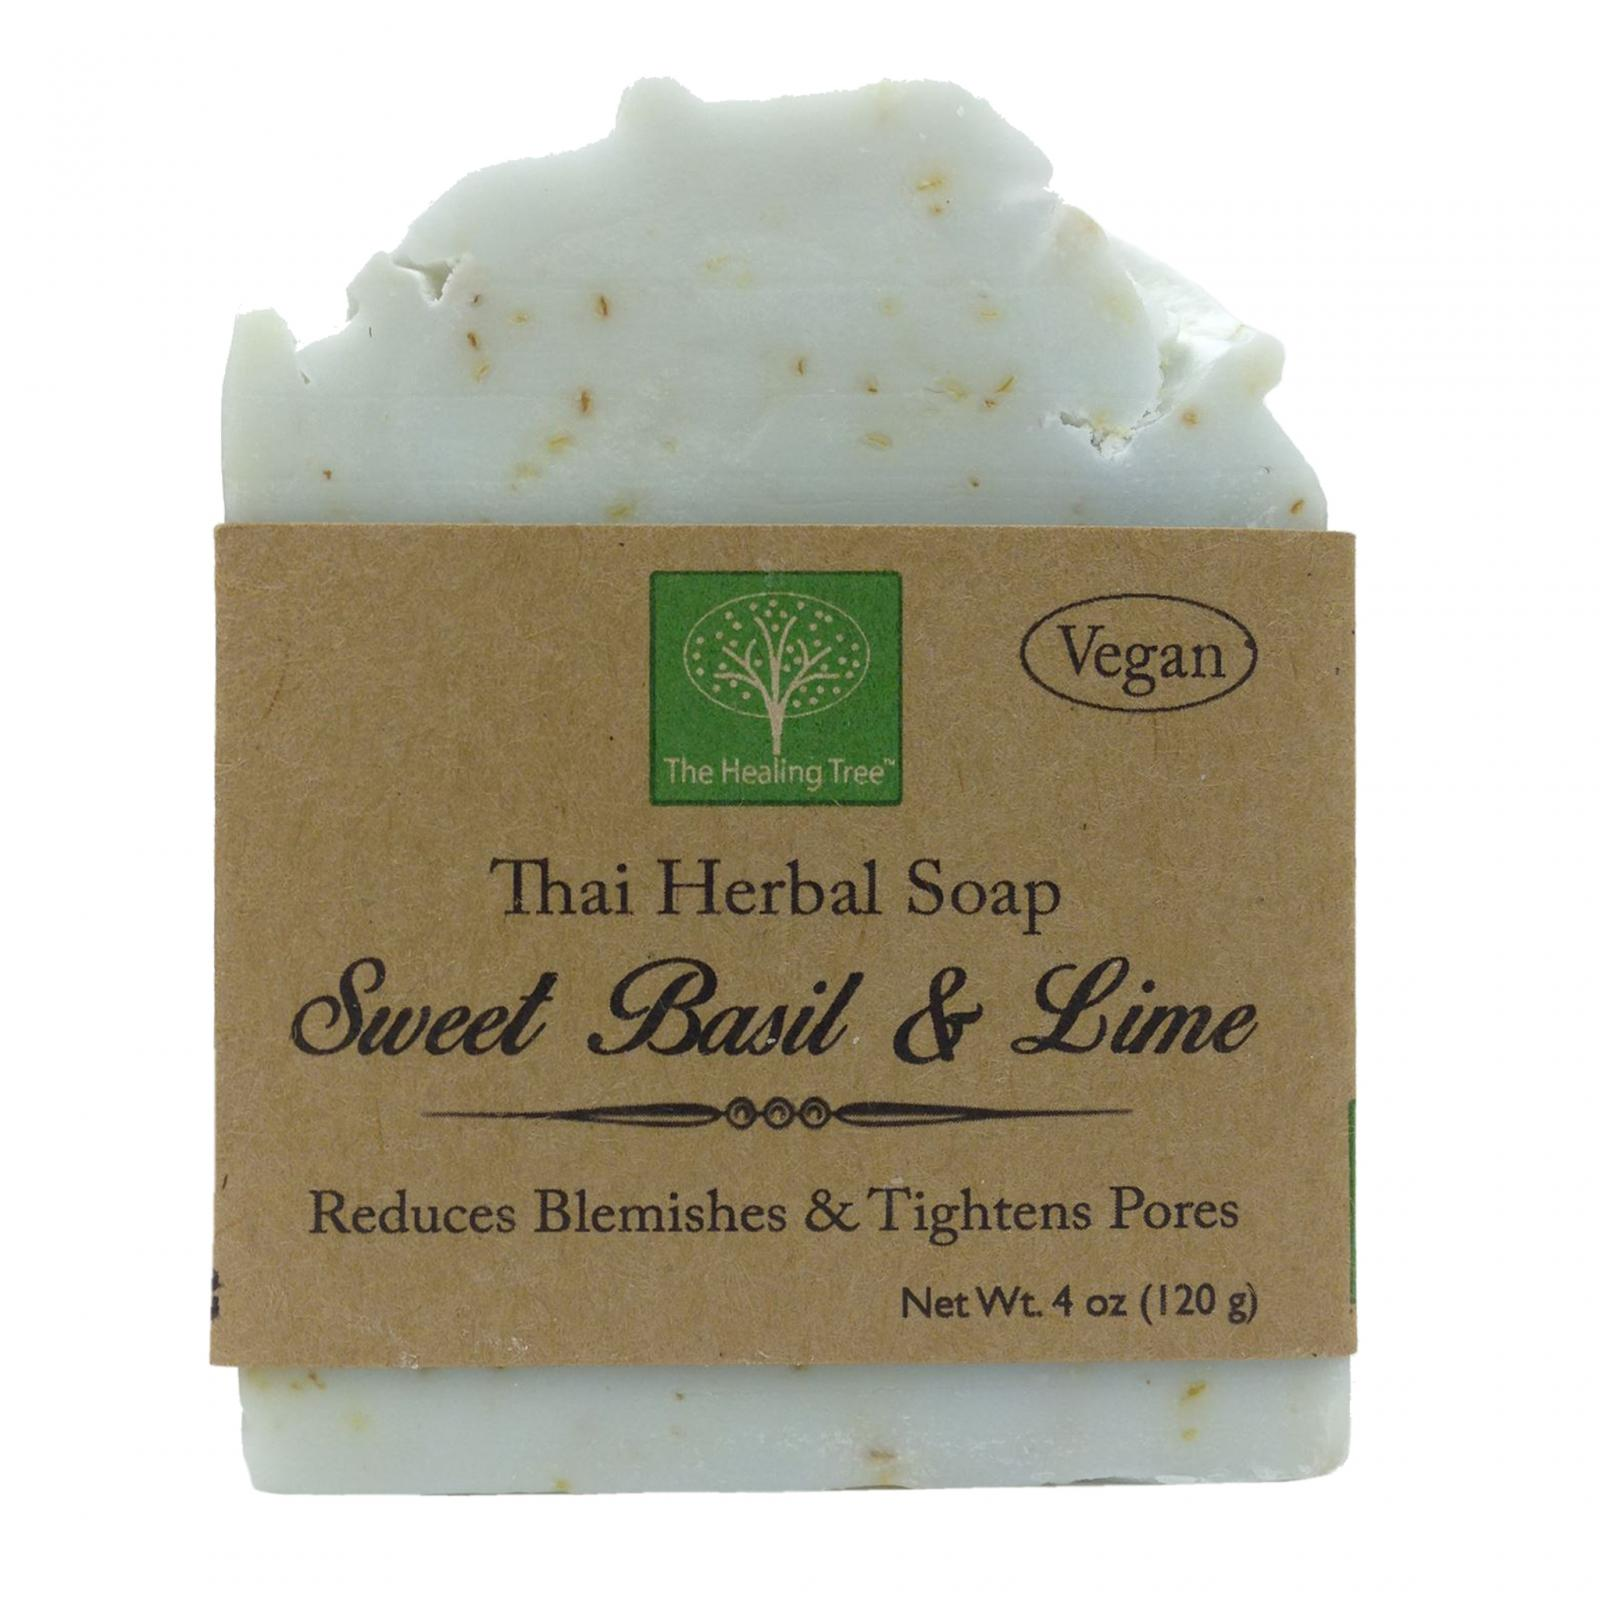 Sweet Basil & Lime Handmade Soap helps Reduce Blemishes & Tighten Pores